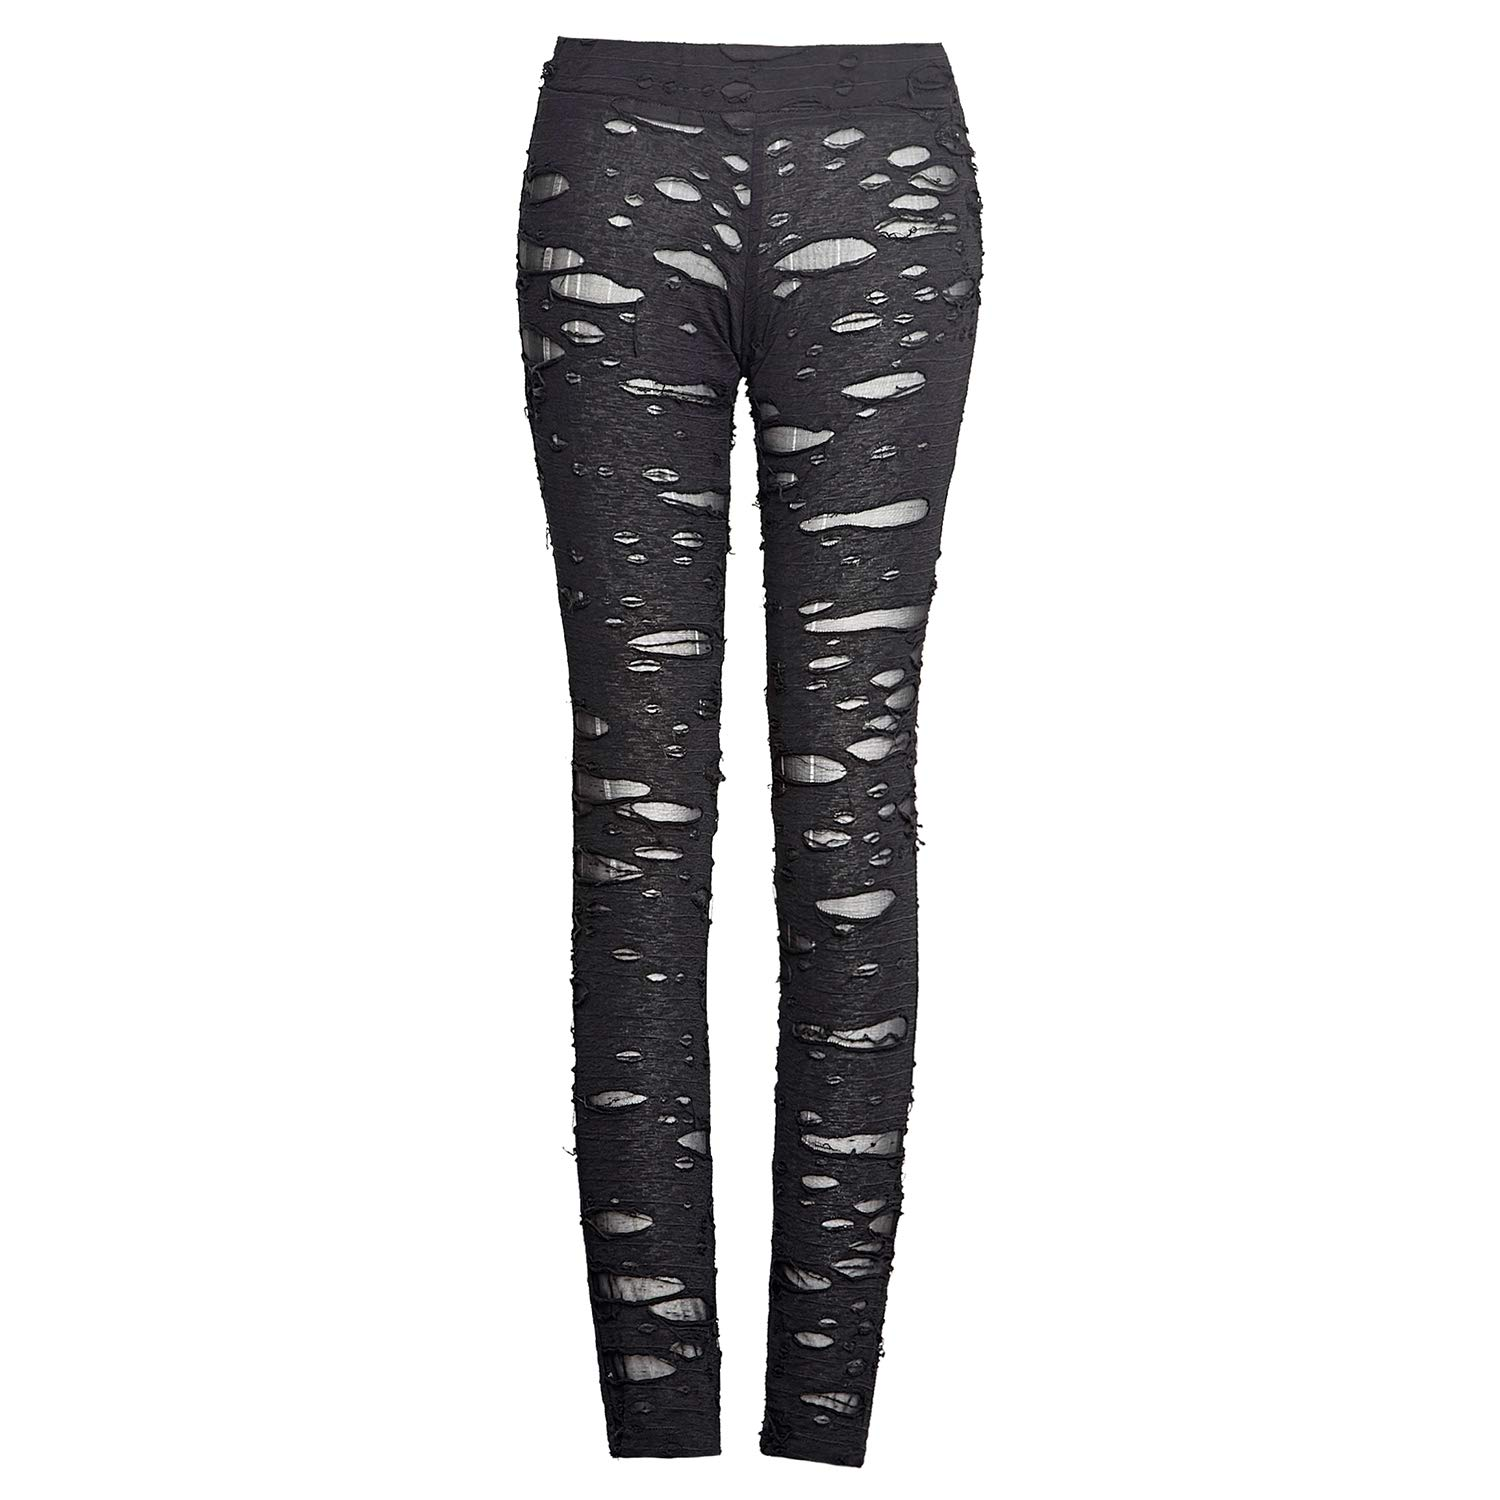 cc0f649e49baa Punk Rave Womens Sexy Ripped Mesh Leggings Gothic Punk Tattered Slimming  Pants Trousers at Amazon Women's Clothing store: